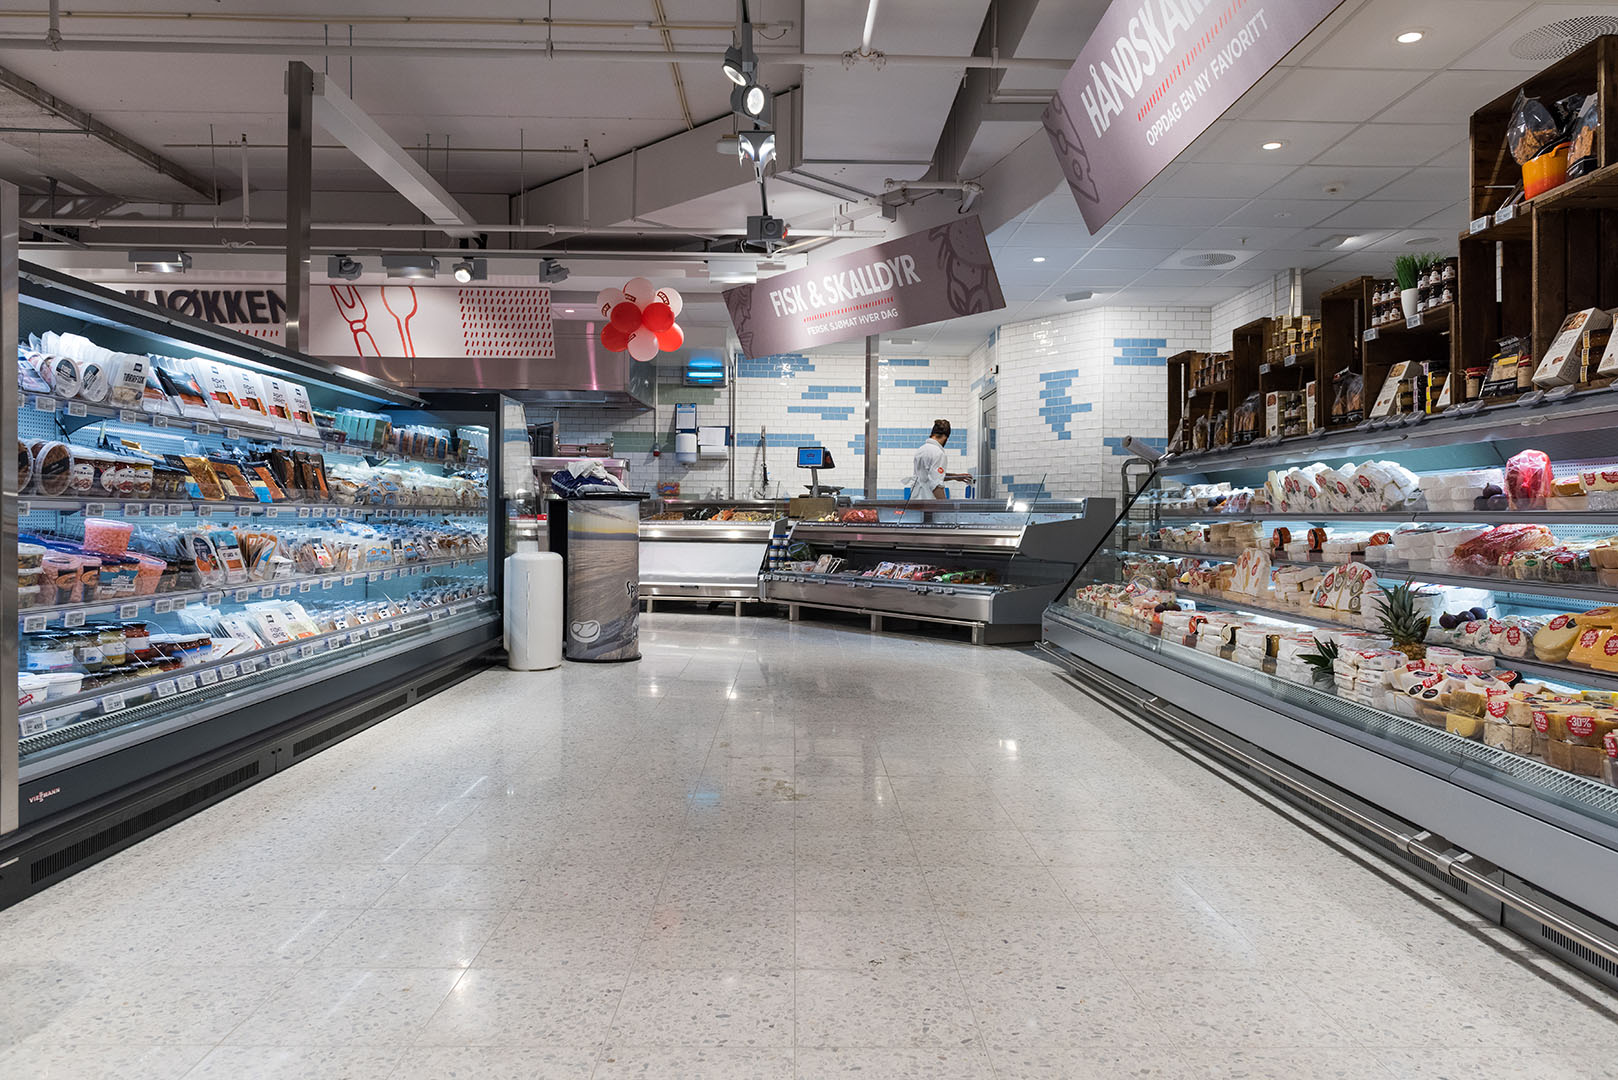 Meny Torvet is one of the finest grocery shops in Norway.